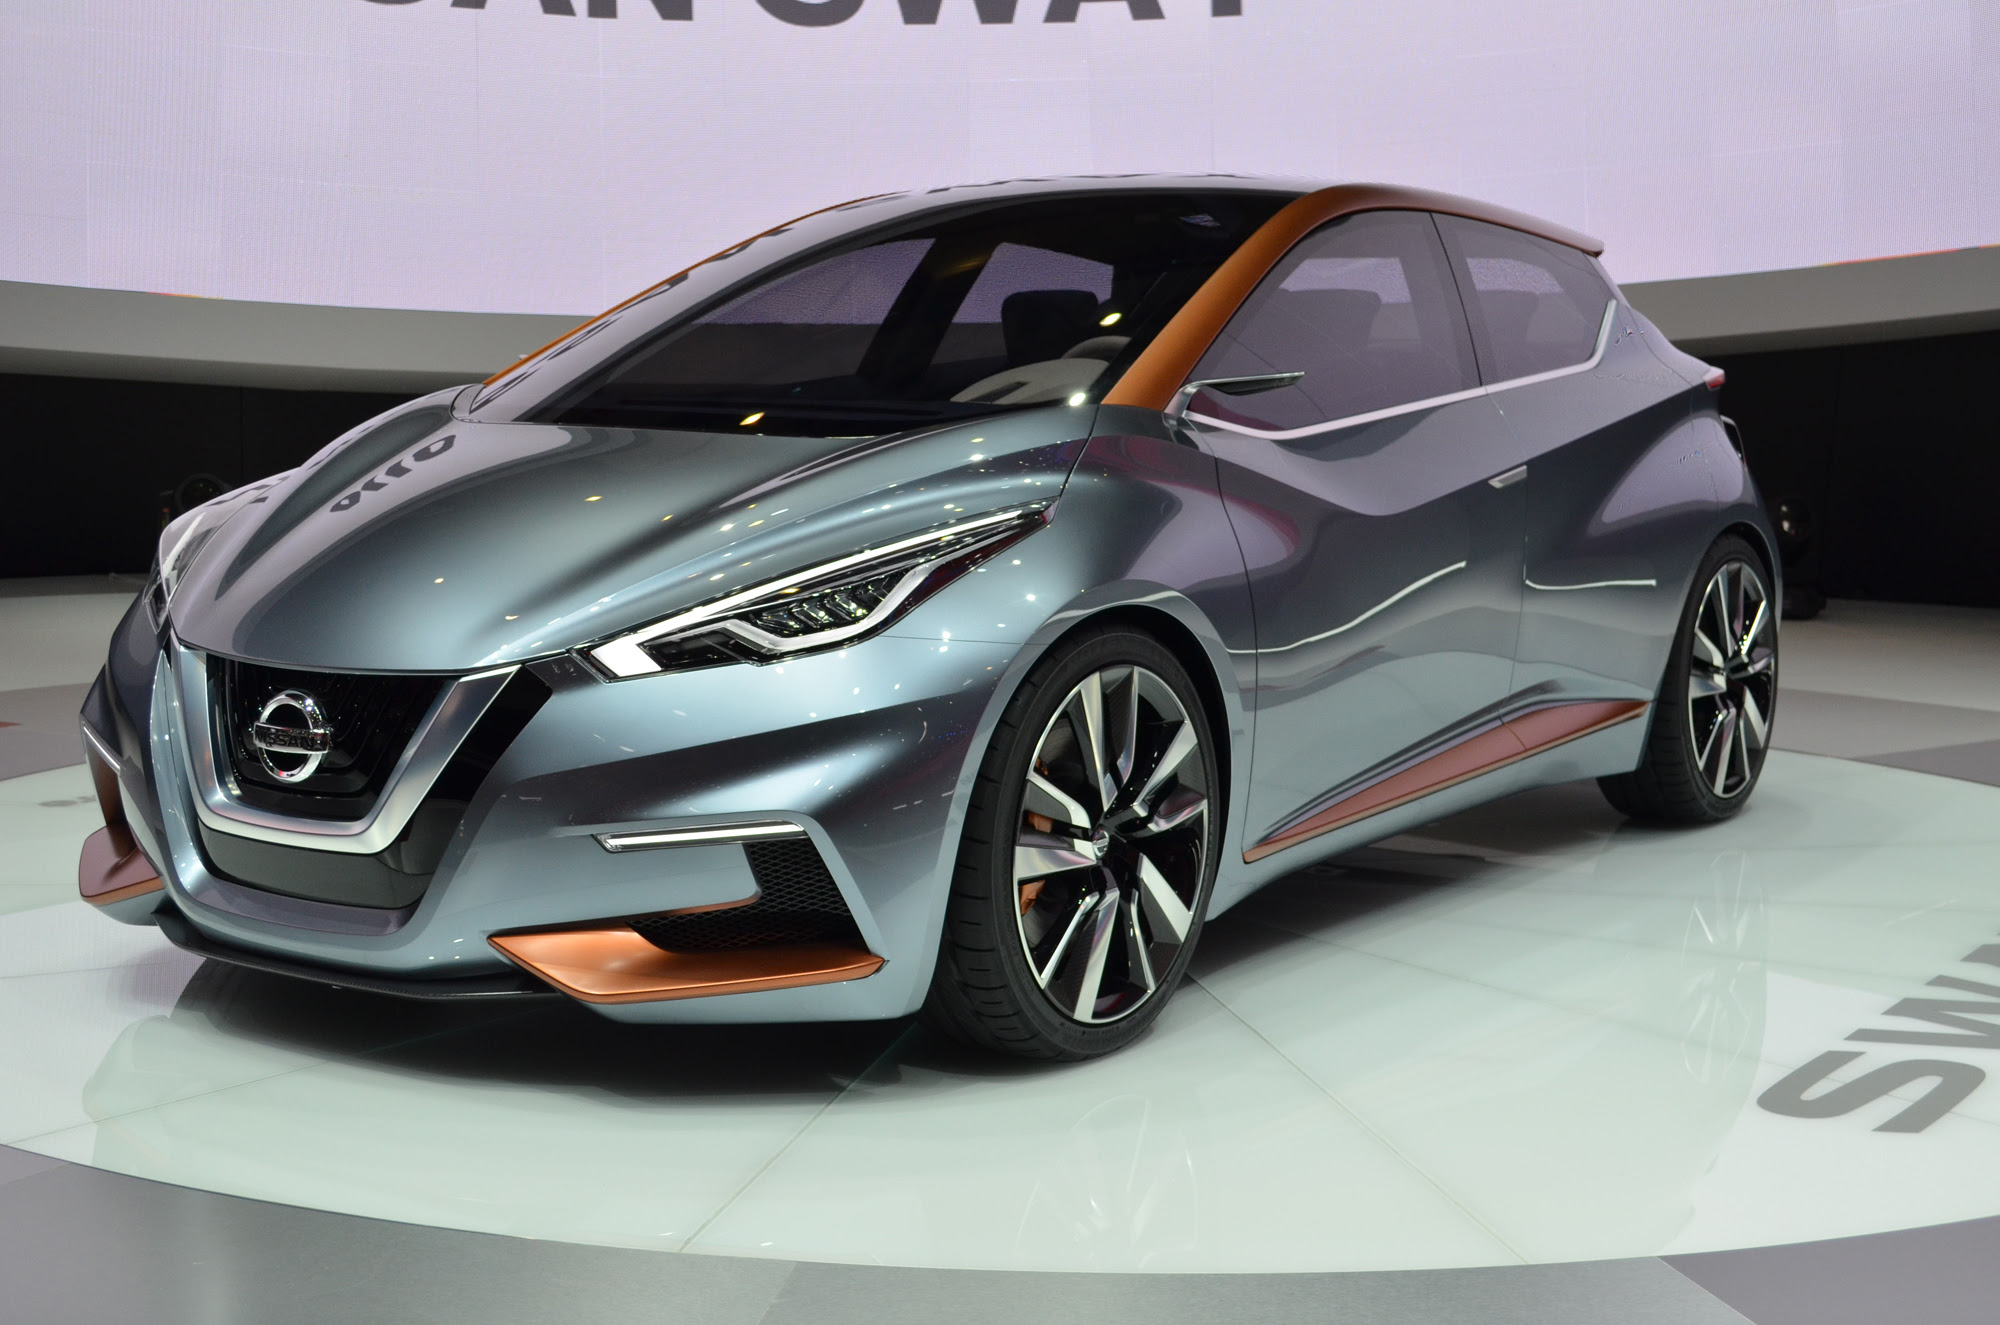 Nissan Sway Concept Previews Hatchbacks to Come - Nissan ...